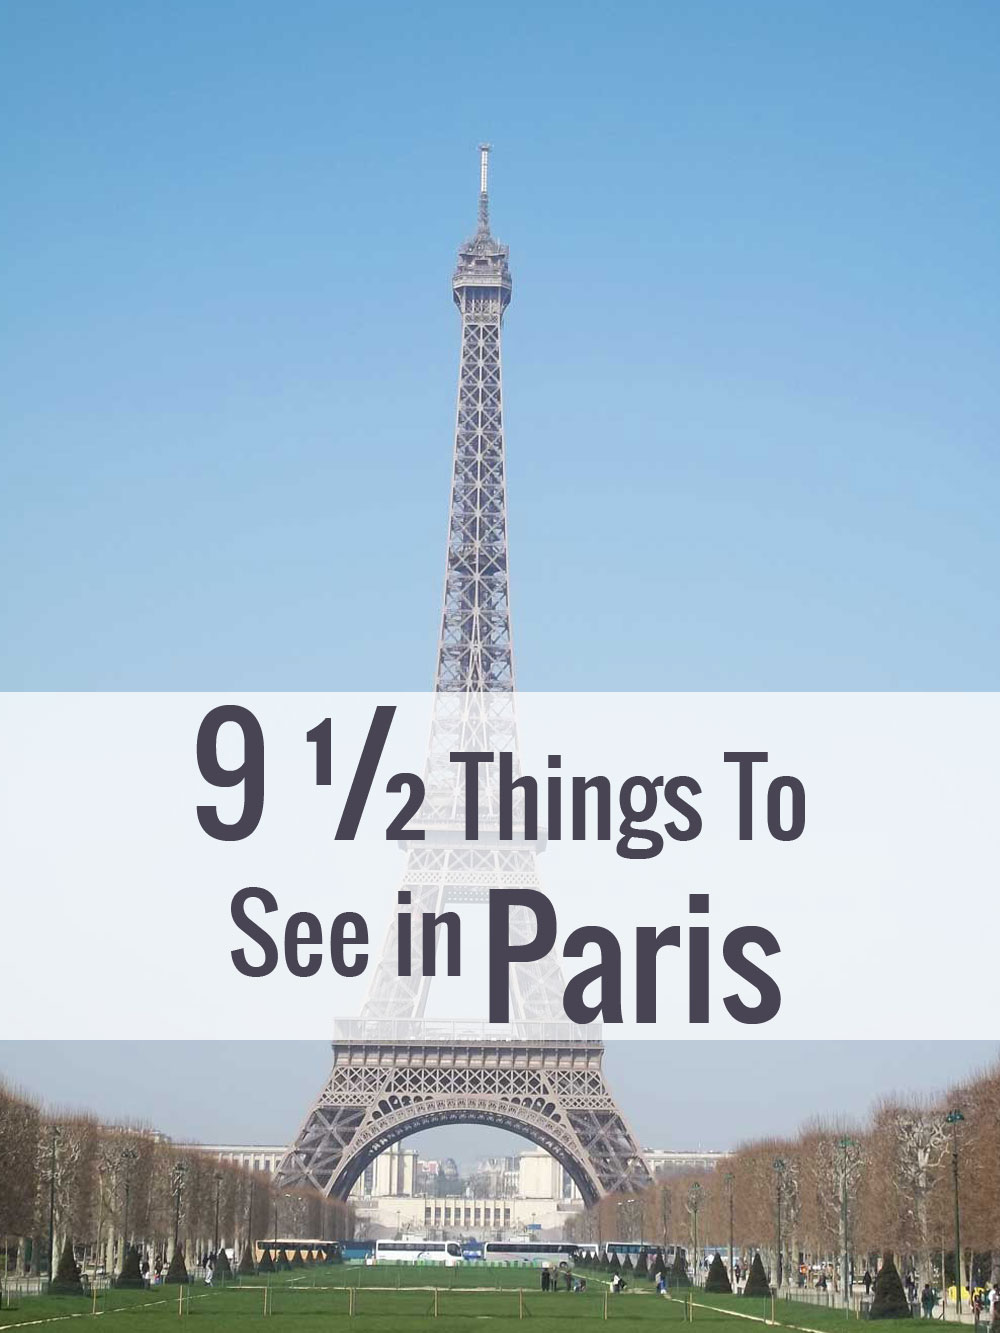 9 1/2 Things To See in Paris